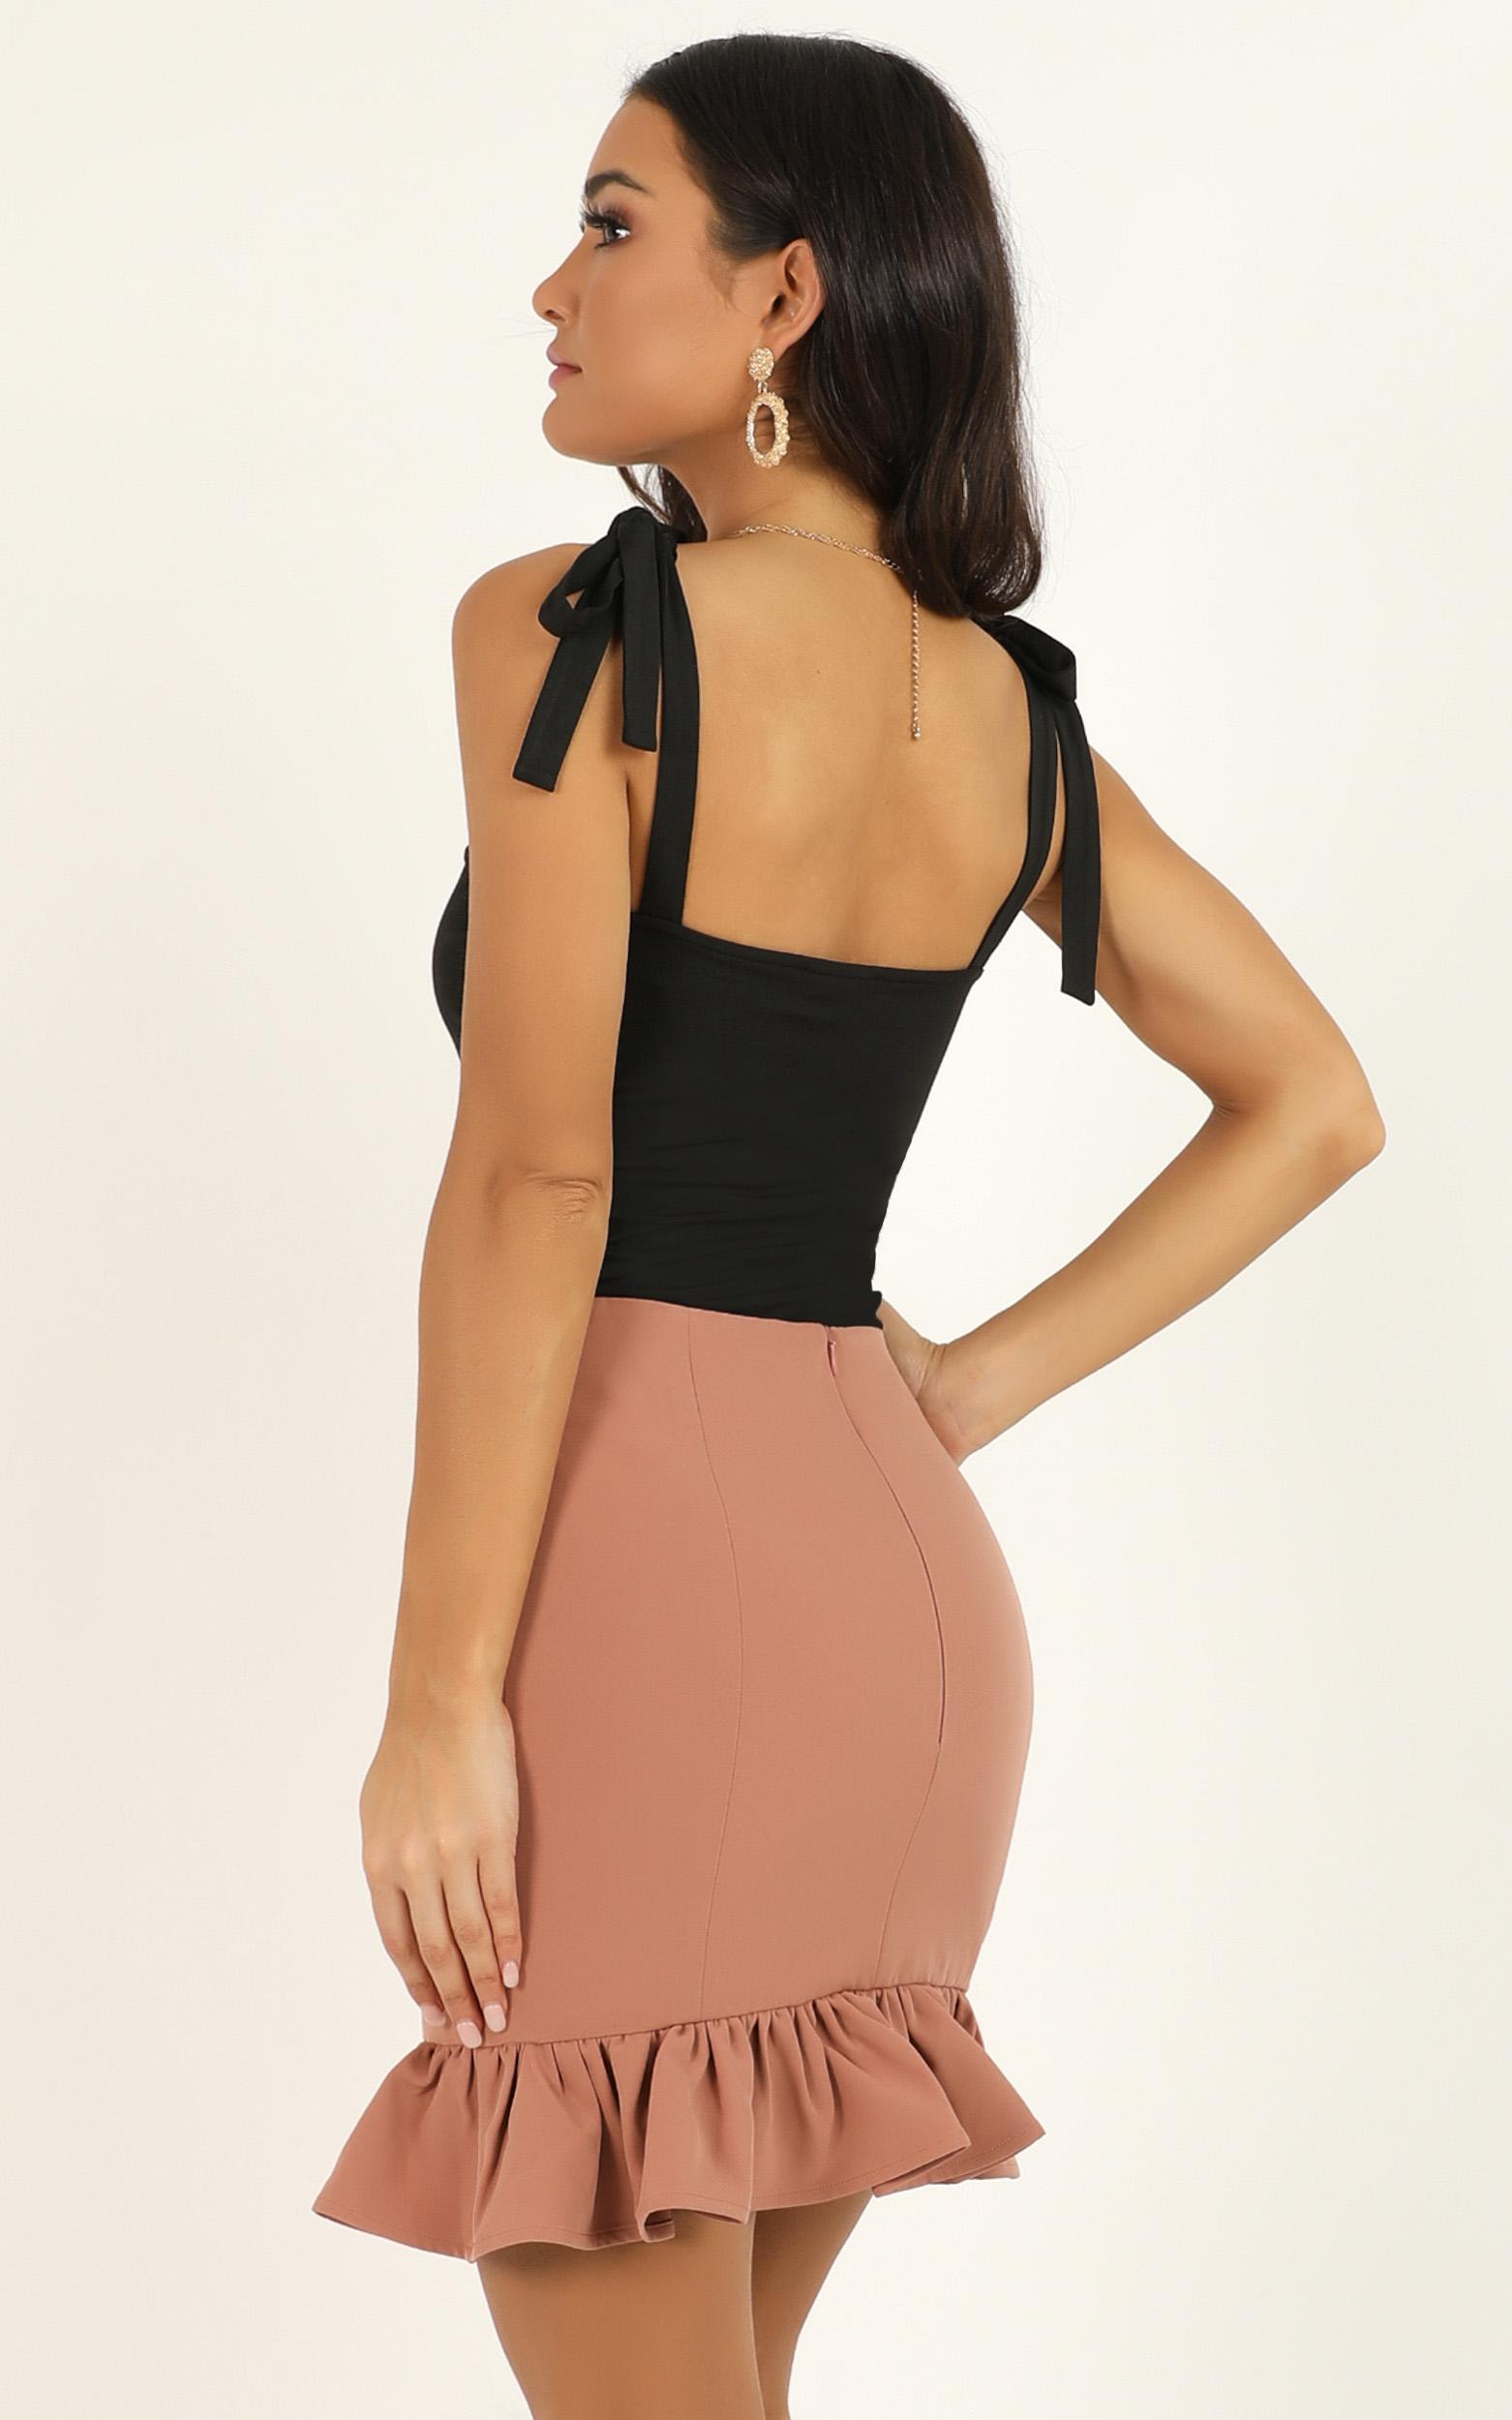 Small Town Way Skirt In blush - 20 (XXXXL), Blush, hi-res image number null